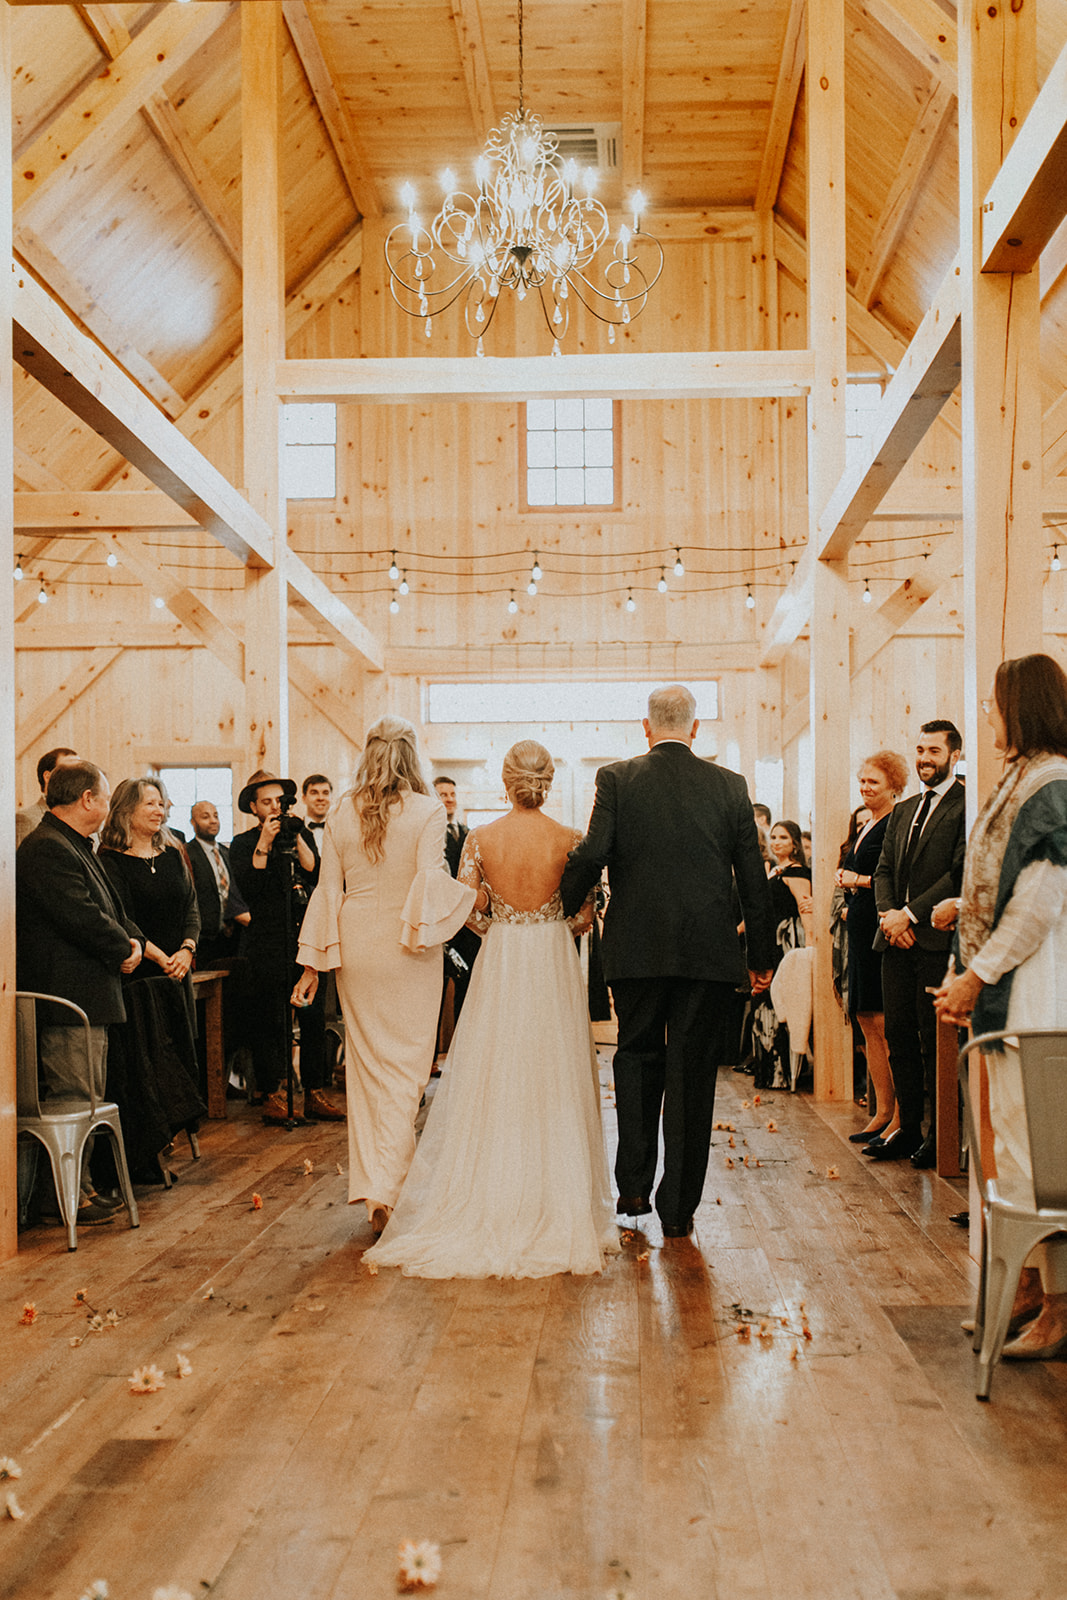 Beech Hill Barn Maine Wedding_110318_12.jpg